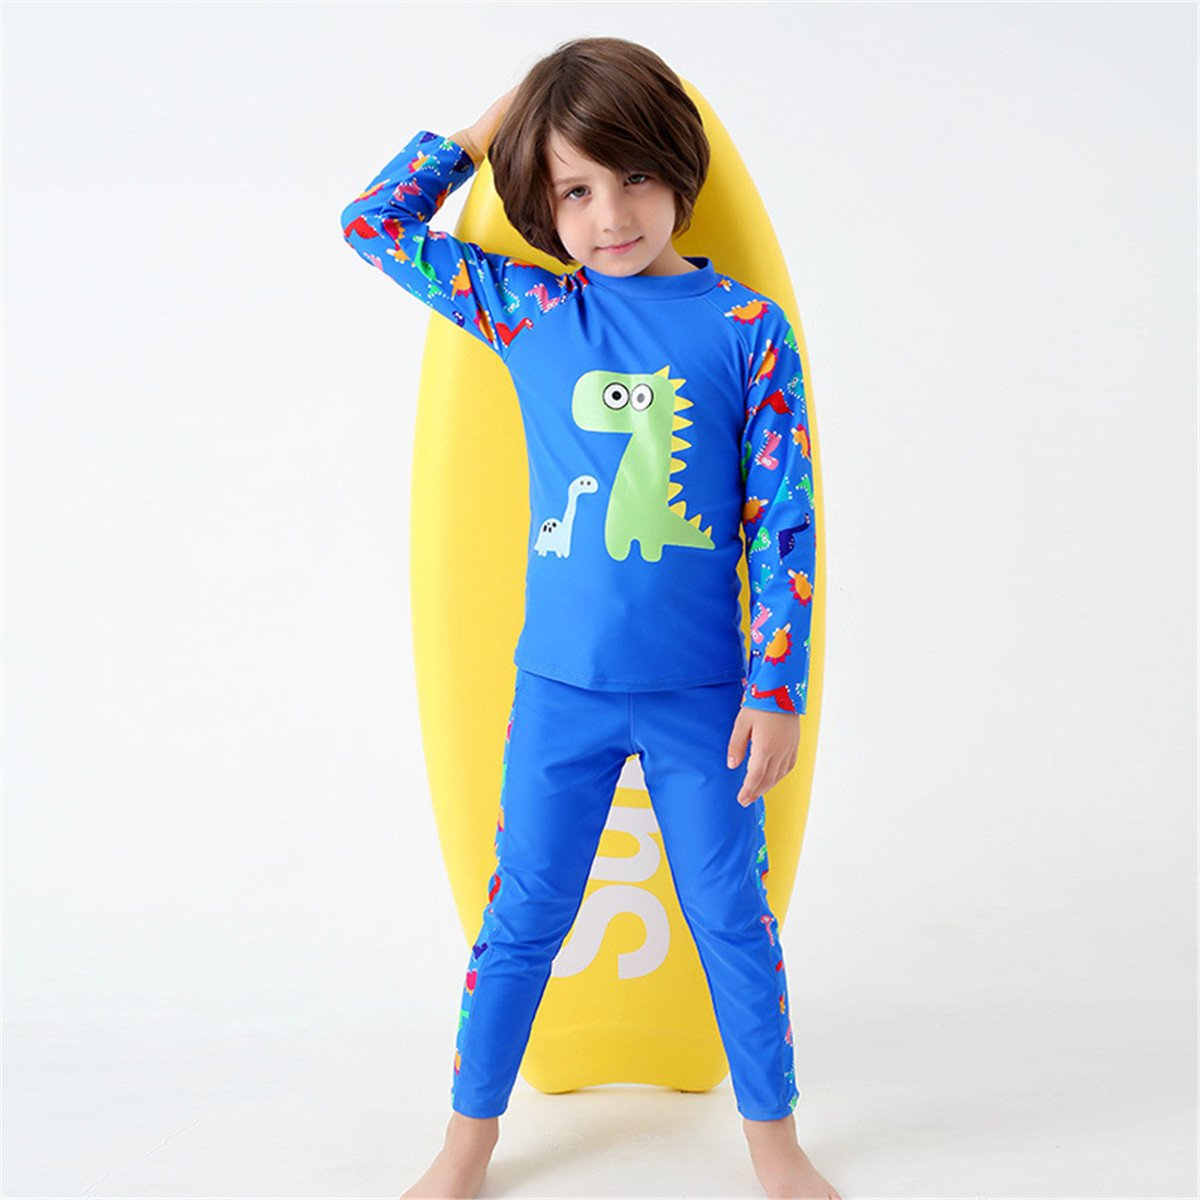 JELEUON Little Boys Two Pieces Full Body Long Sleeve Swimwear Harajuku Dinosaur Print UV Rash Guard Sun Protection Swimsuit